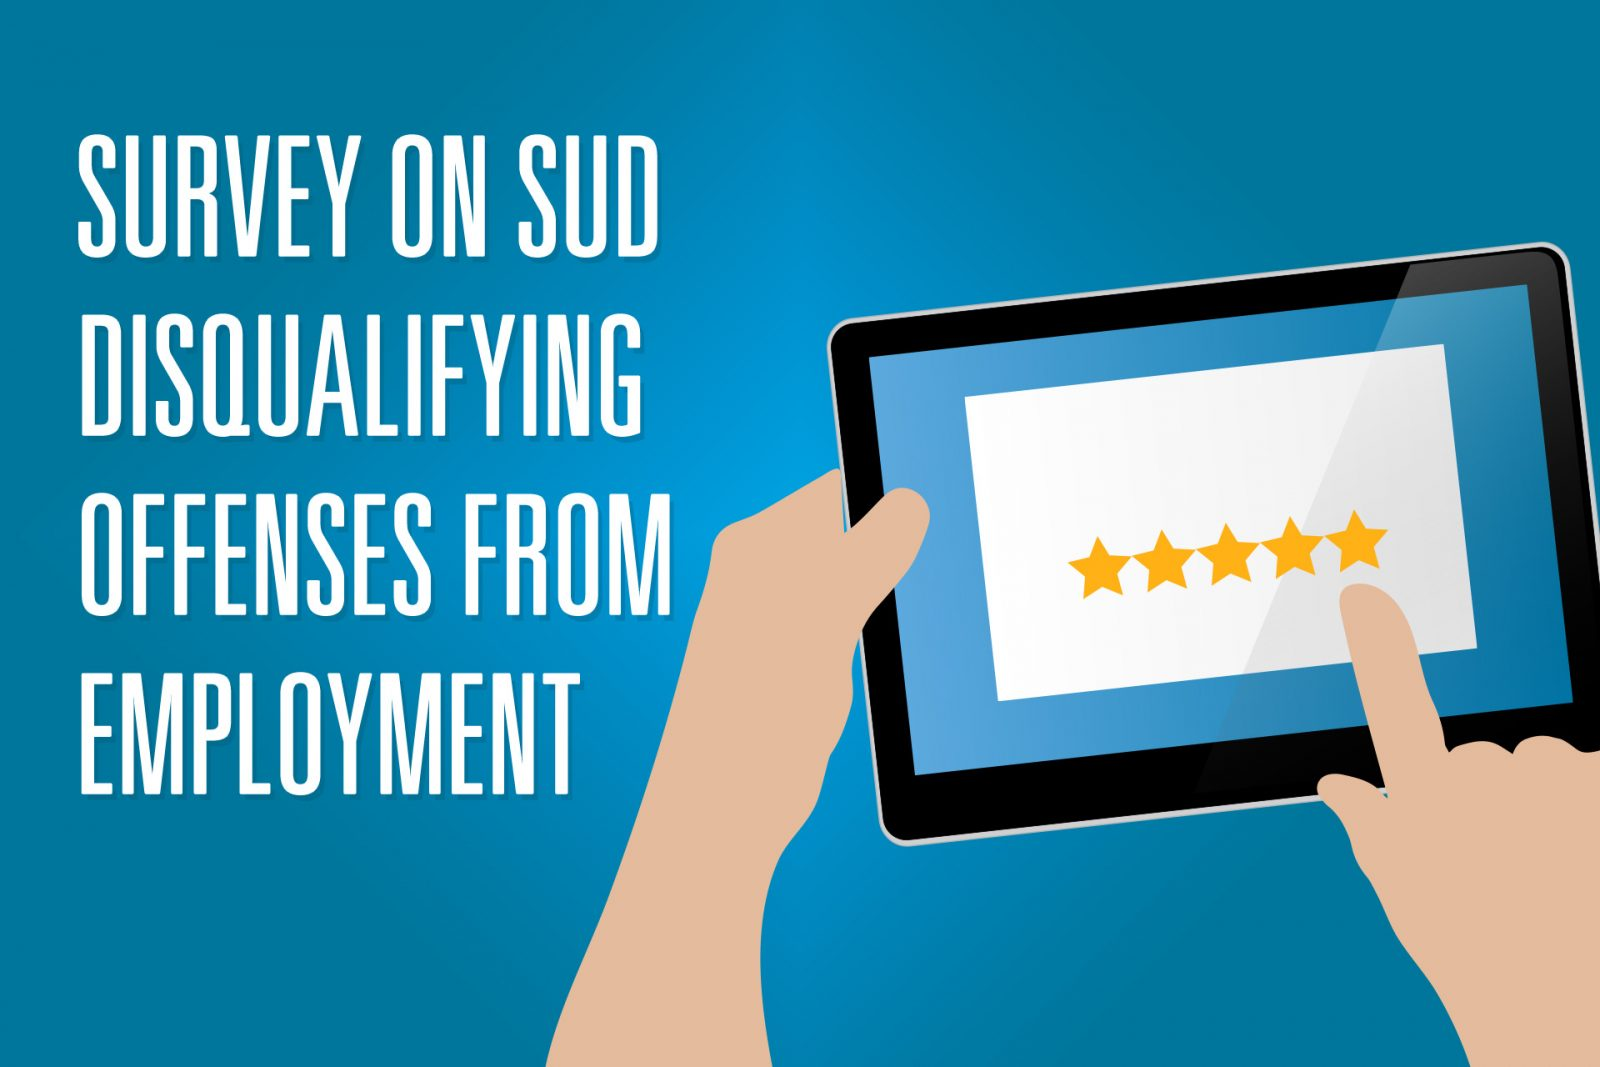 Survey on SUD Disqualifying Offenses from Employment